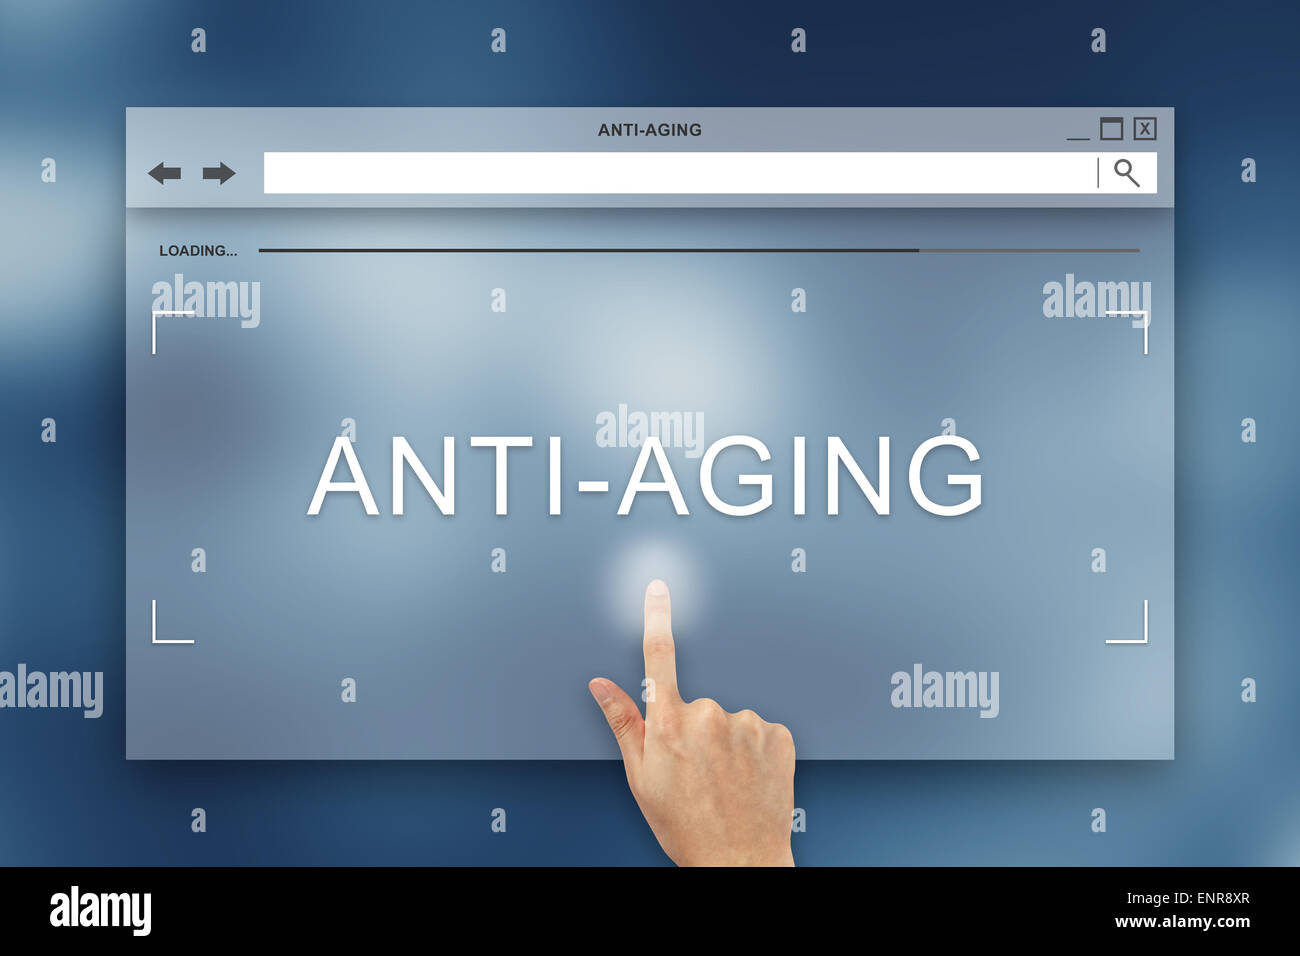 hand press on anti aging button on webpage - Stock Image